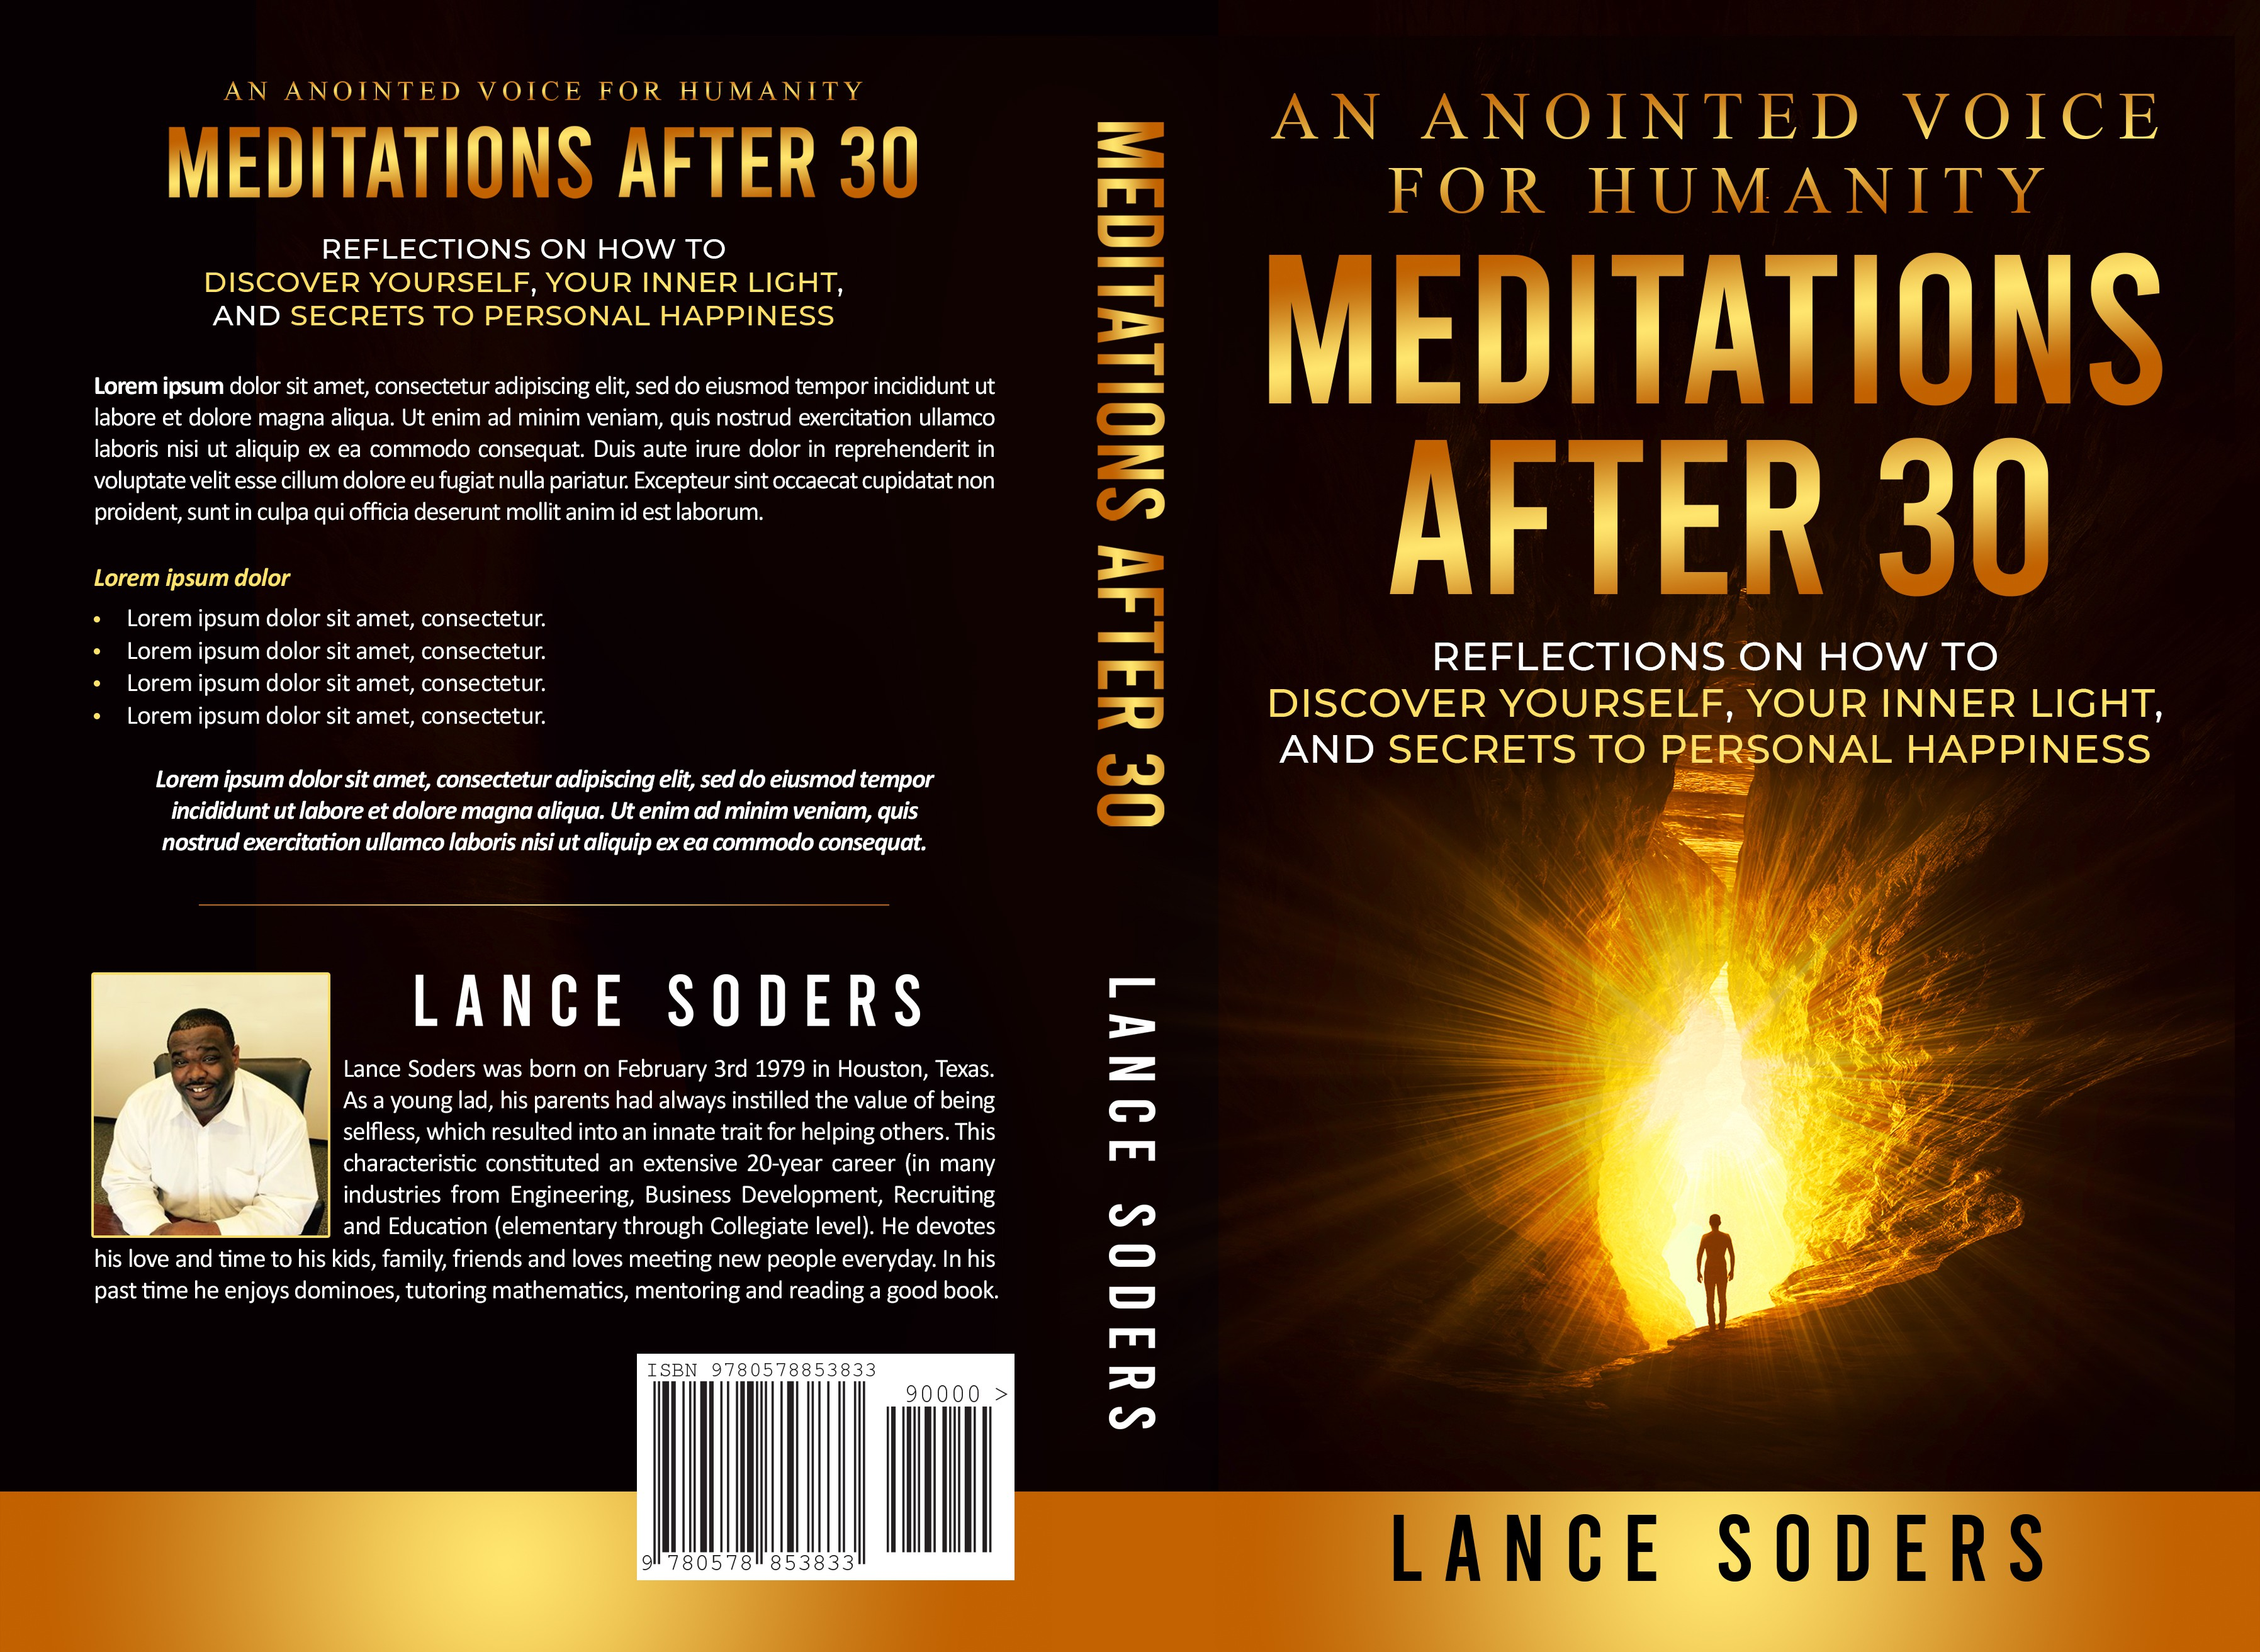 Meditations after 30 book cover - Contest